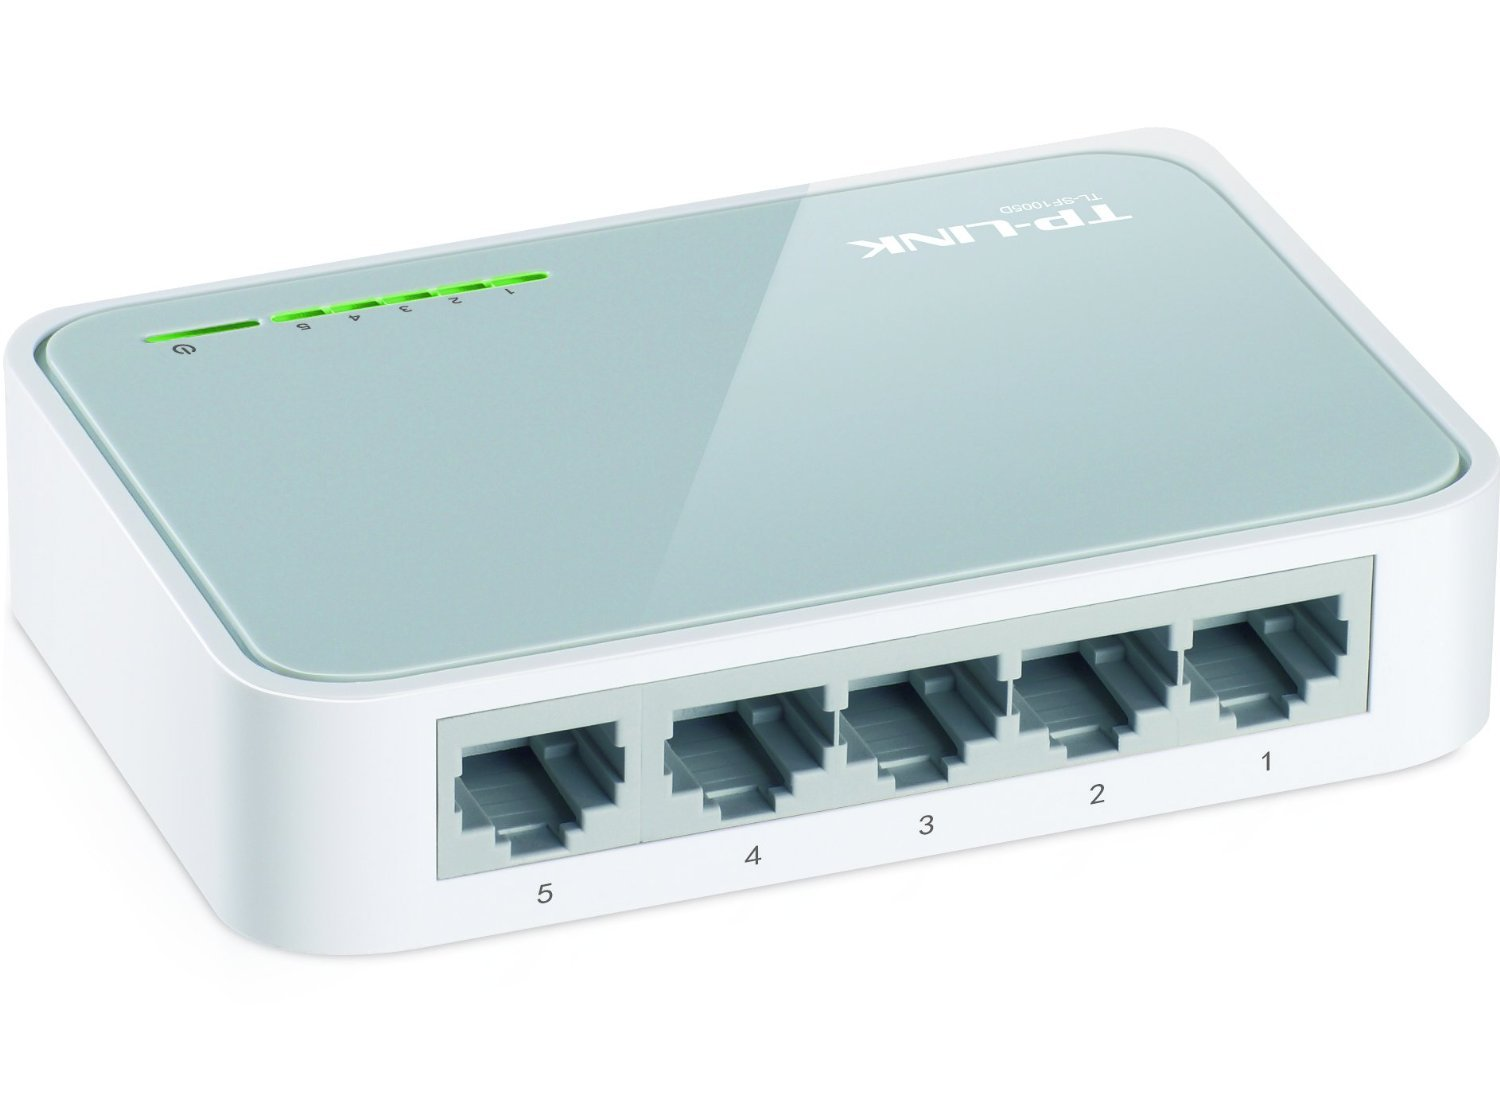 TP-Link 5-Port Fast Ethernet Desktop Switch (TL-SF1005D)